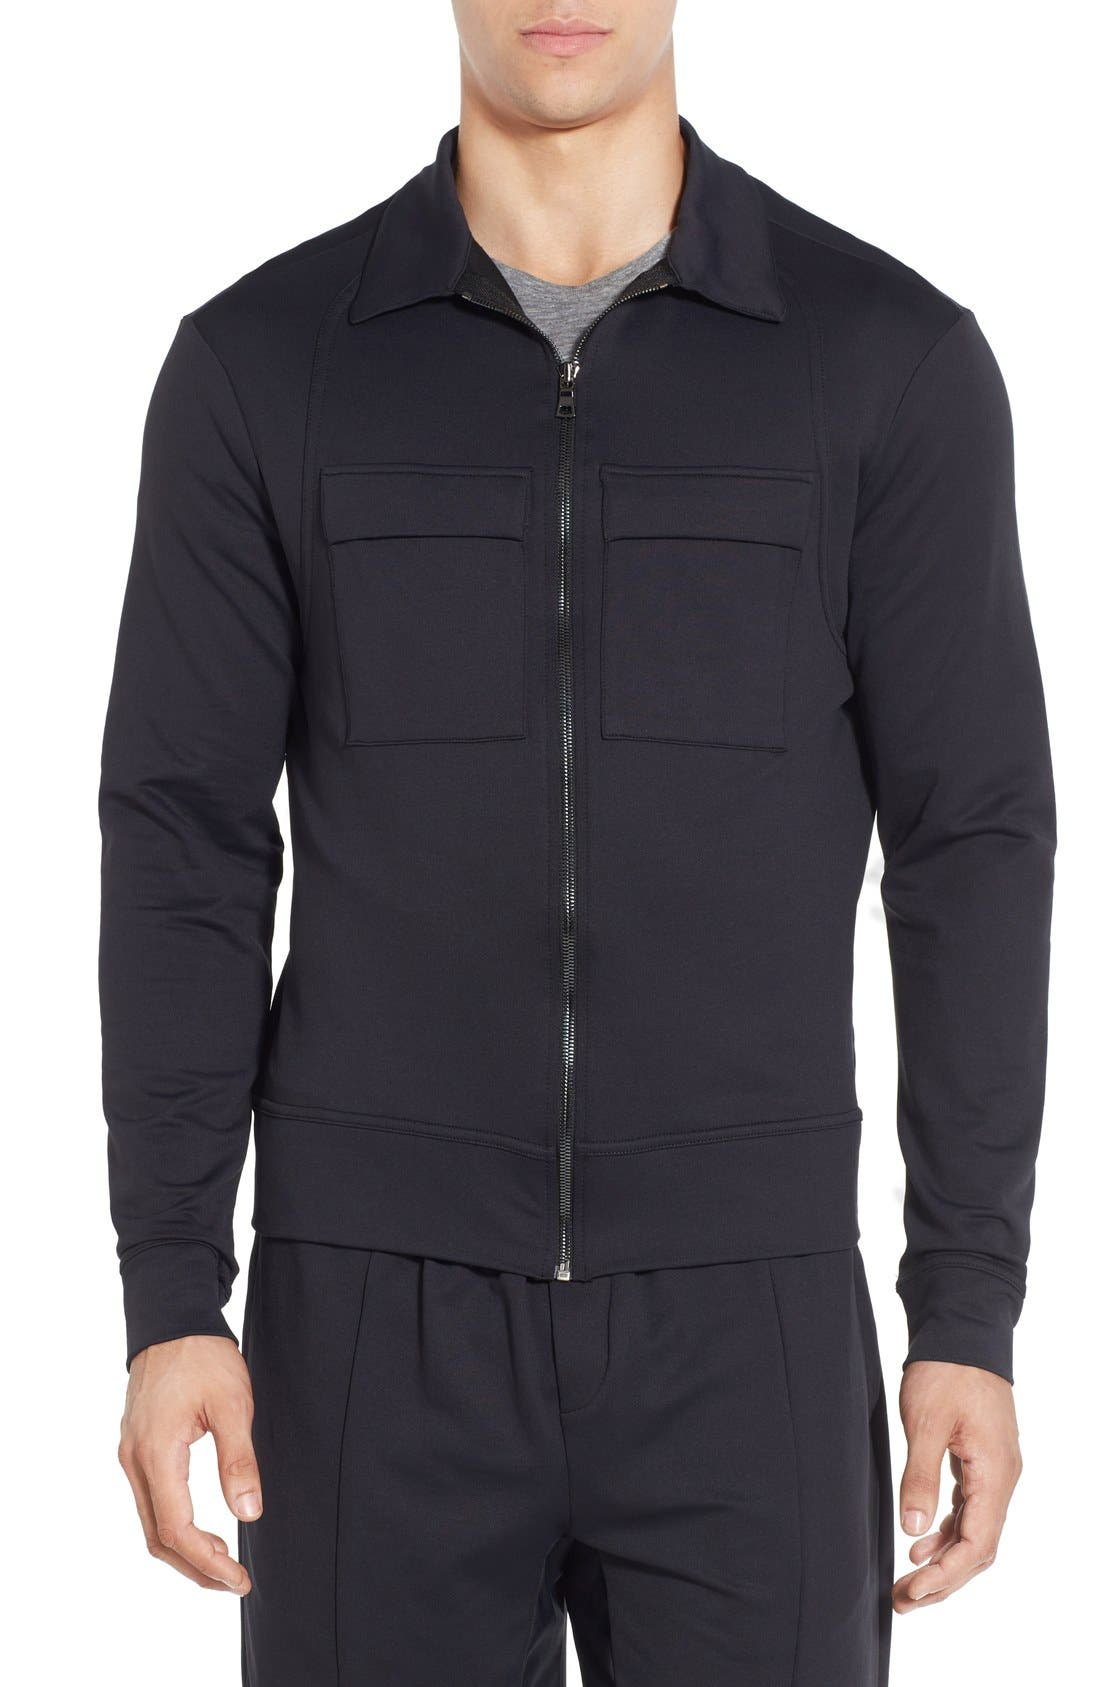 UNCL 'Barret' Trim Fit Technical Jacket